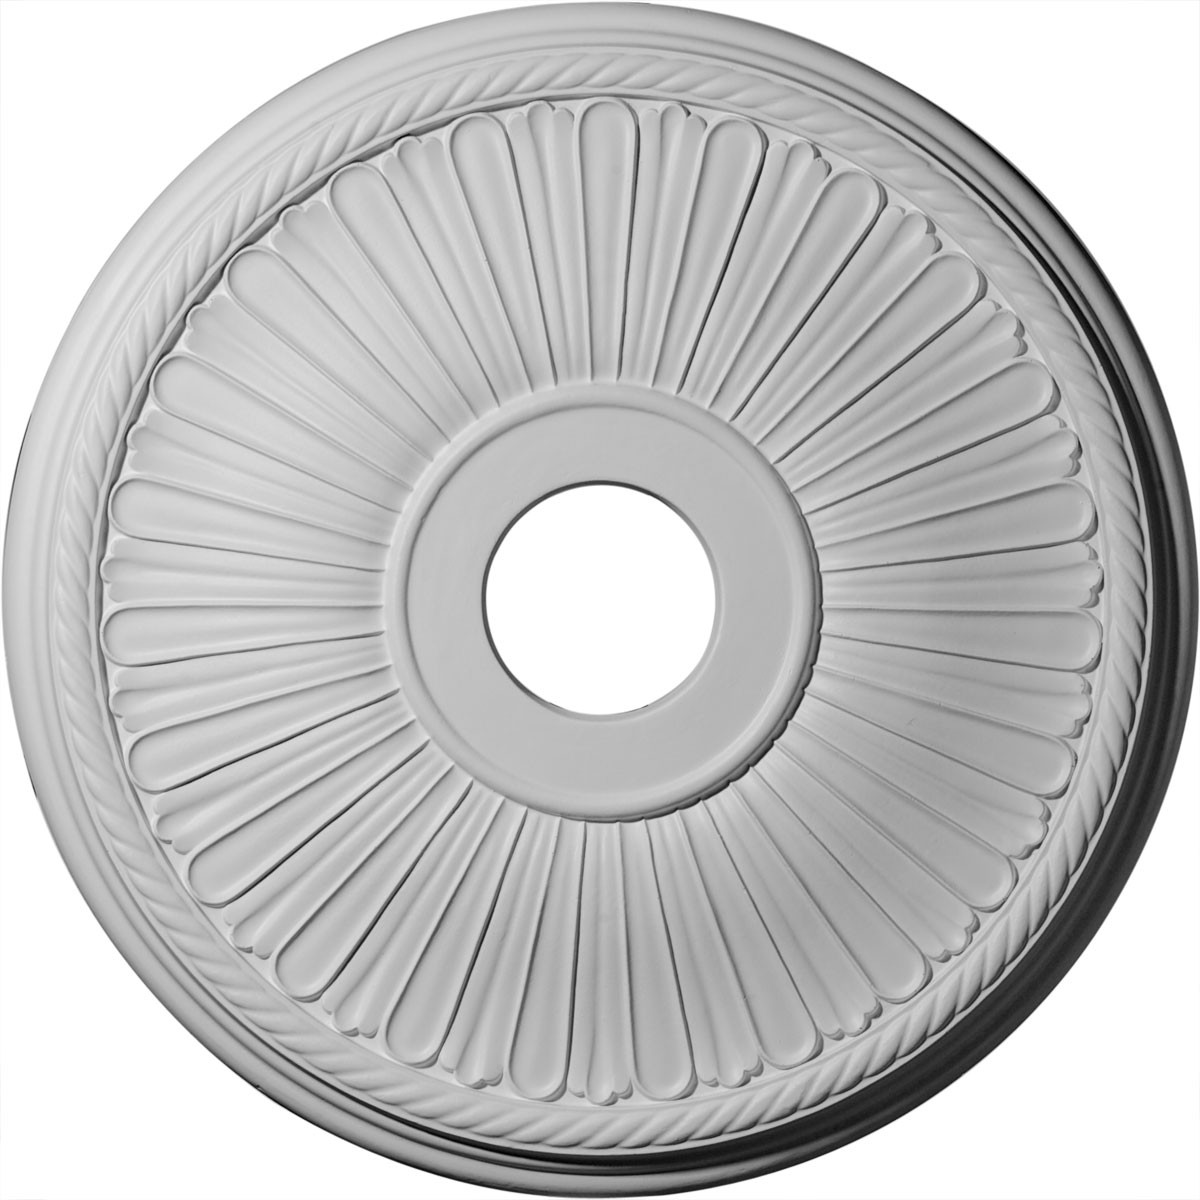 "EM-CM20BE1 - 20 1/8""OD x 3 7/8""ID x 1 7/8""P Berkshire Ceiling Medallion (Fits Canopies up to 6 3/8"")"